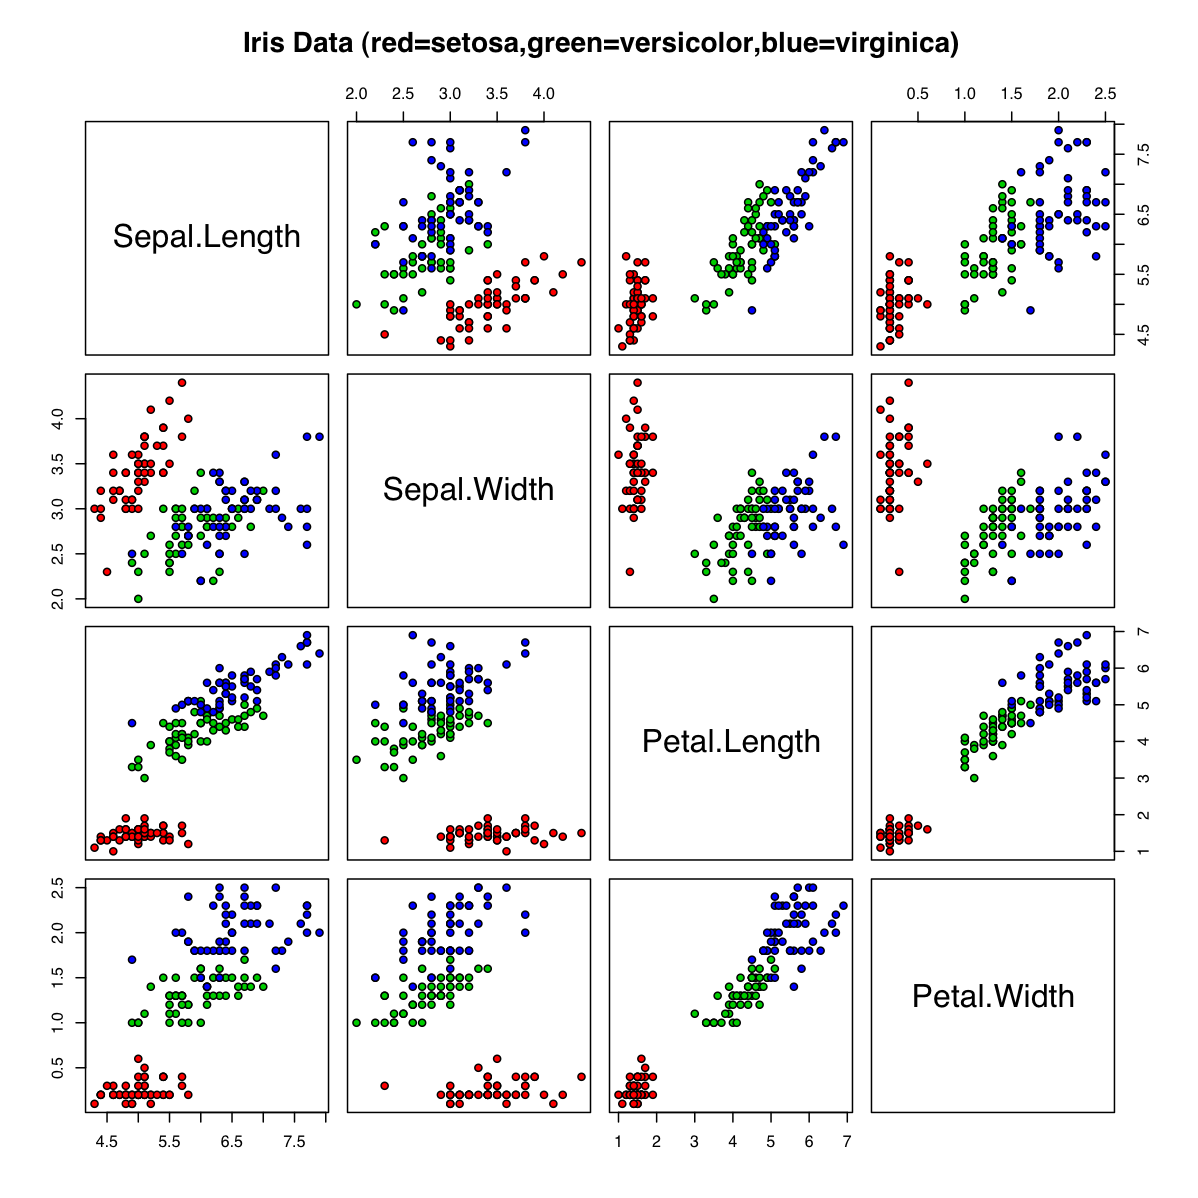 The iris dataset, as a grid of scatterplots